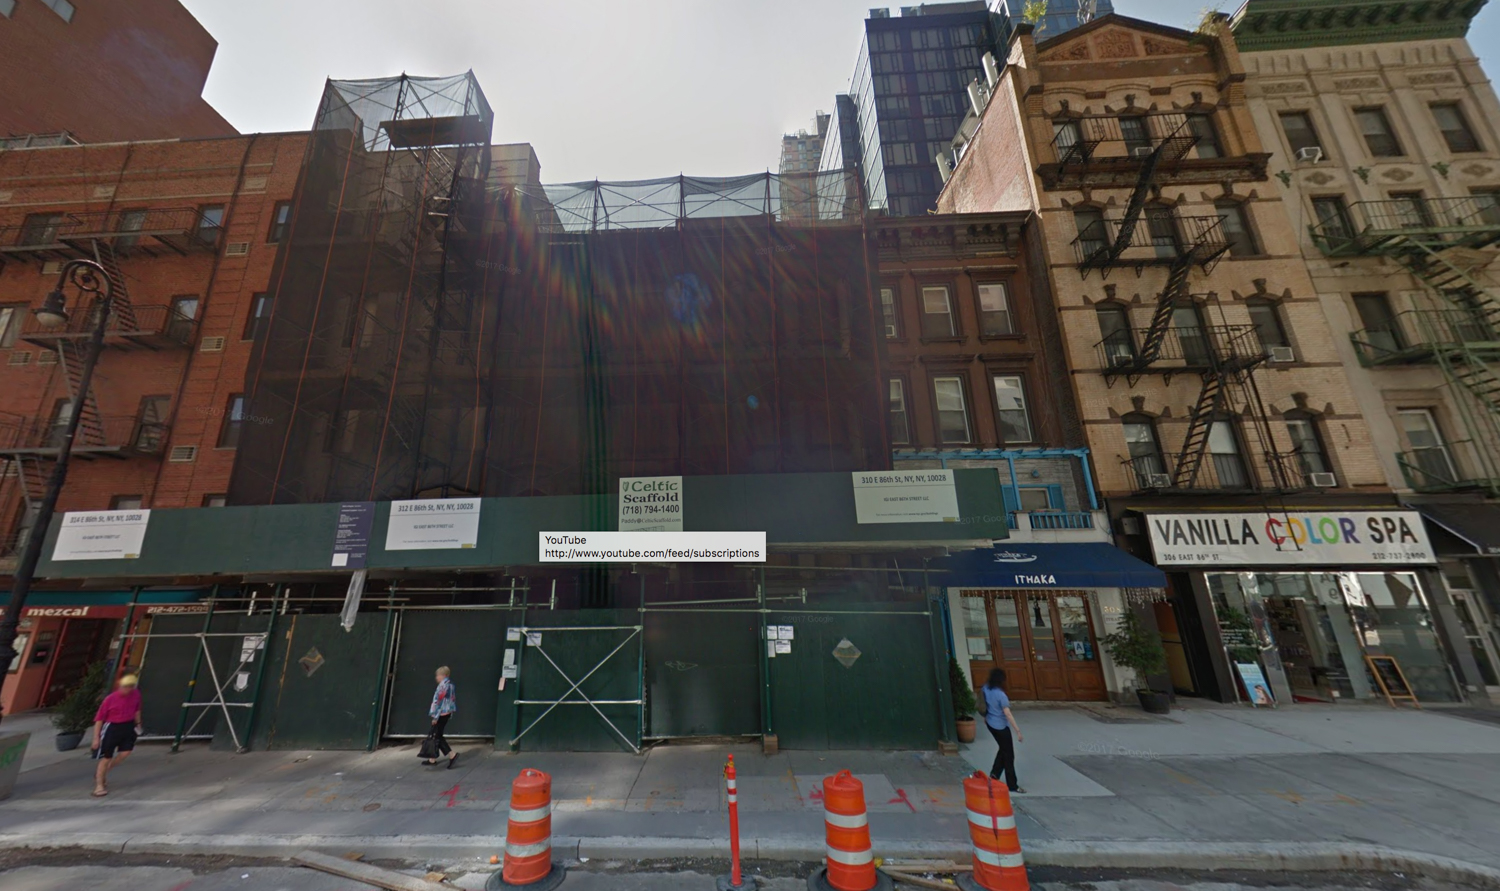 308, 310, 312, and 314 East 86th Street, via Google Maps